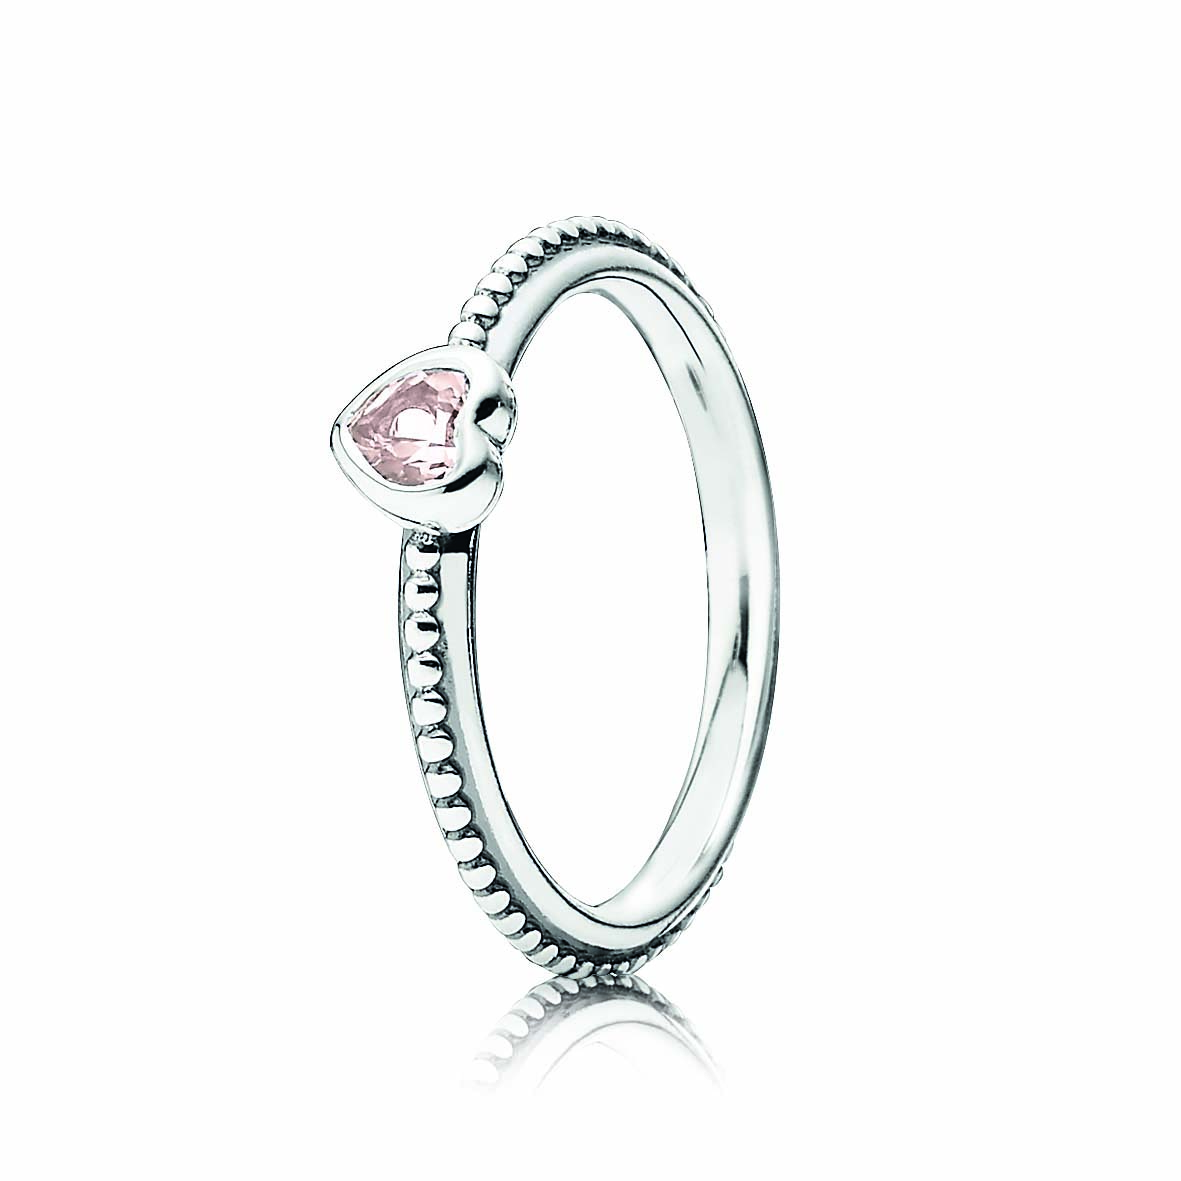 PANDORA_Valentine's 2014_Silver Heart Ring with Rose Pink Synthetic Sapphire_HK$399.jpg